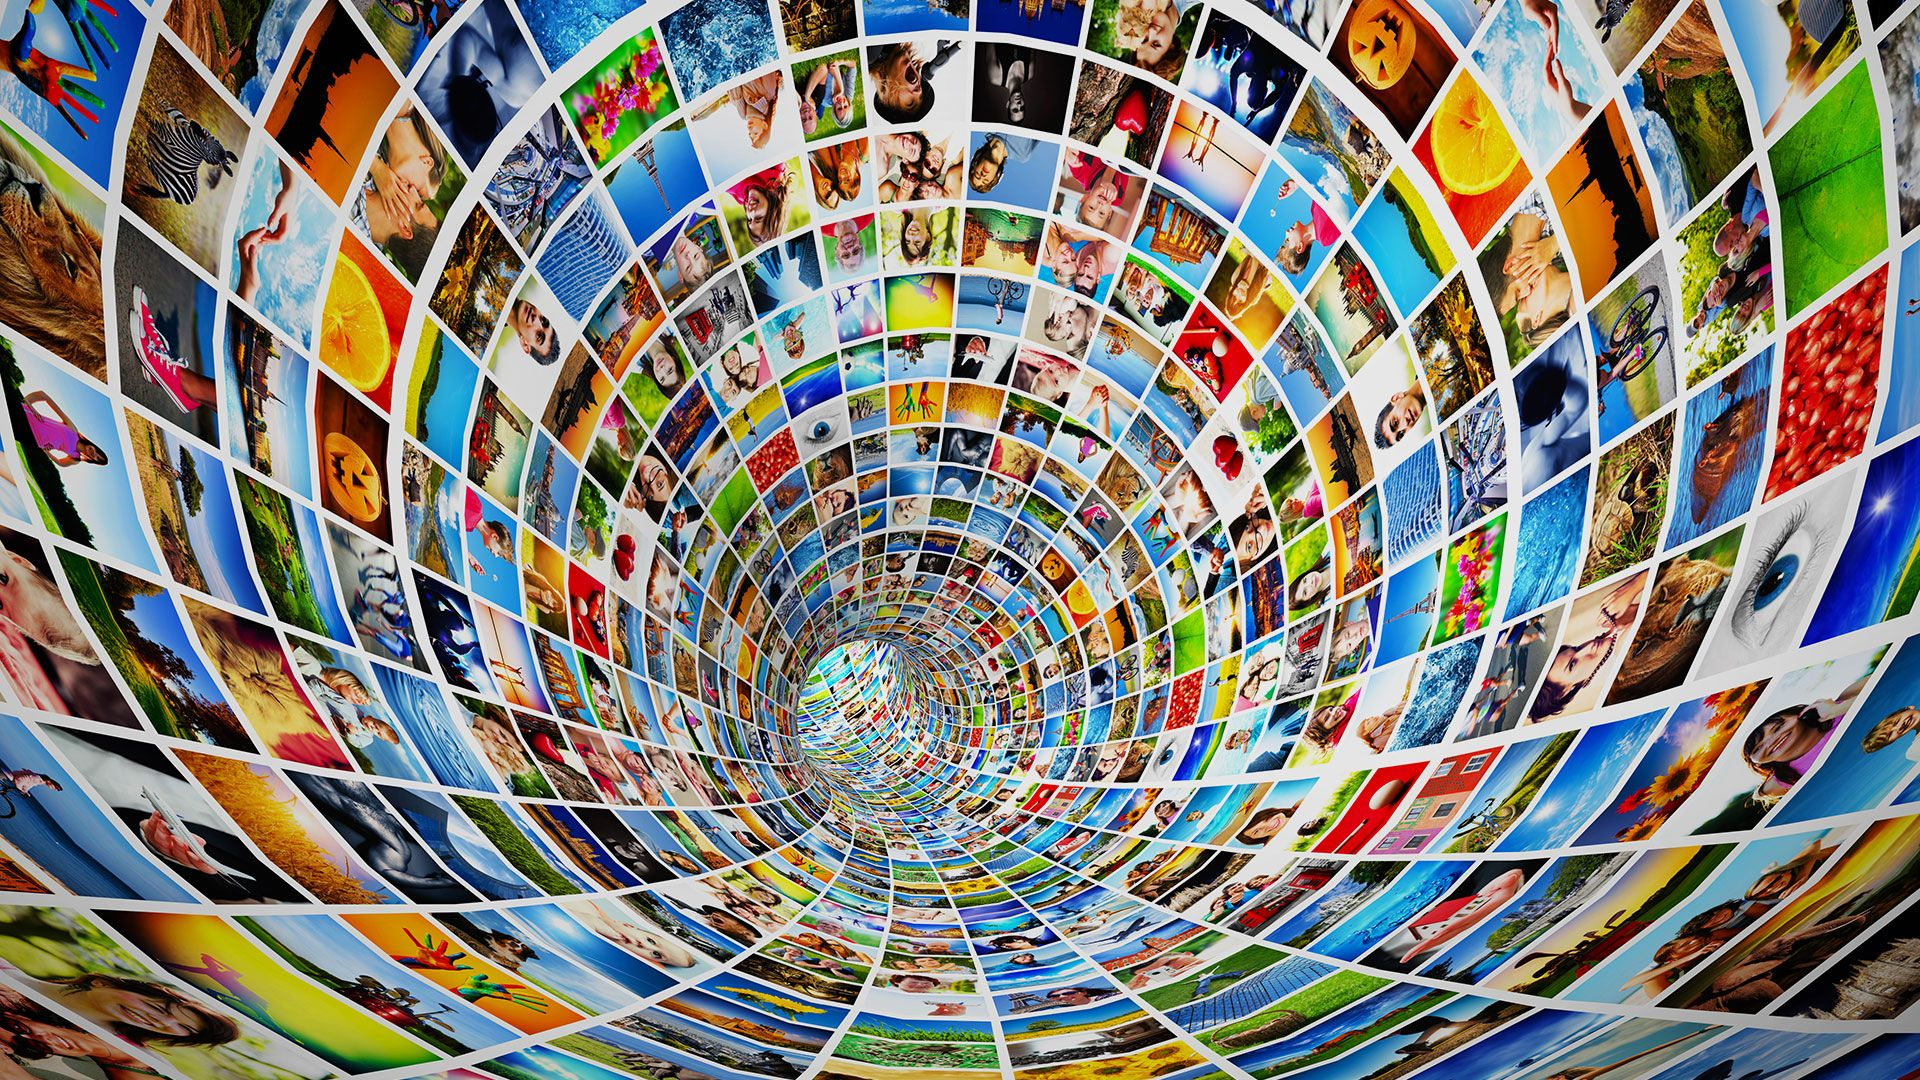 Don't ignore the power of visuals. Columnist Jim Yu discusses ways you can take advantage of images and videos to convert customers.